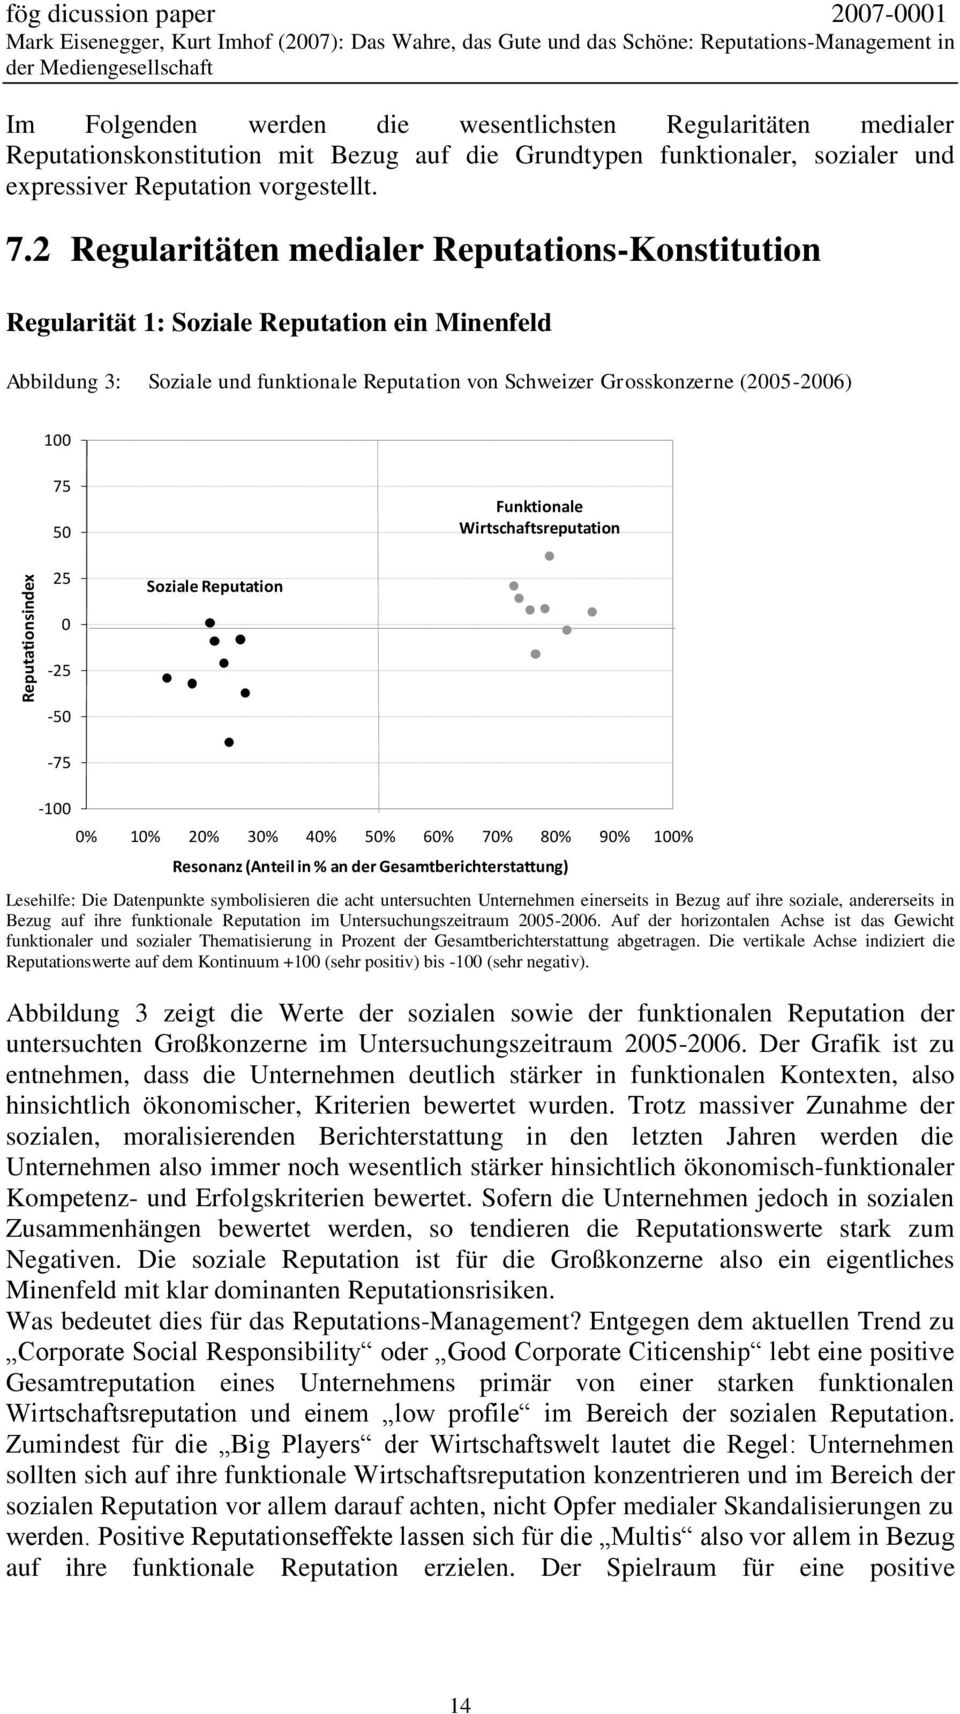 2 Regularitäten medialer Reputations-Konstitution Regularität 1: Soziale Reputation ein Minenfeld Abbildung 3: Soziale und funktionale Reputation von Schweizer Grosskonzerne (2005-2006) 100 75 50